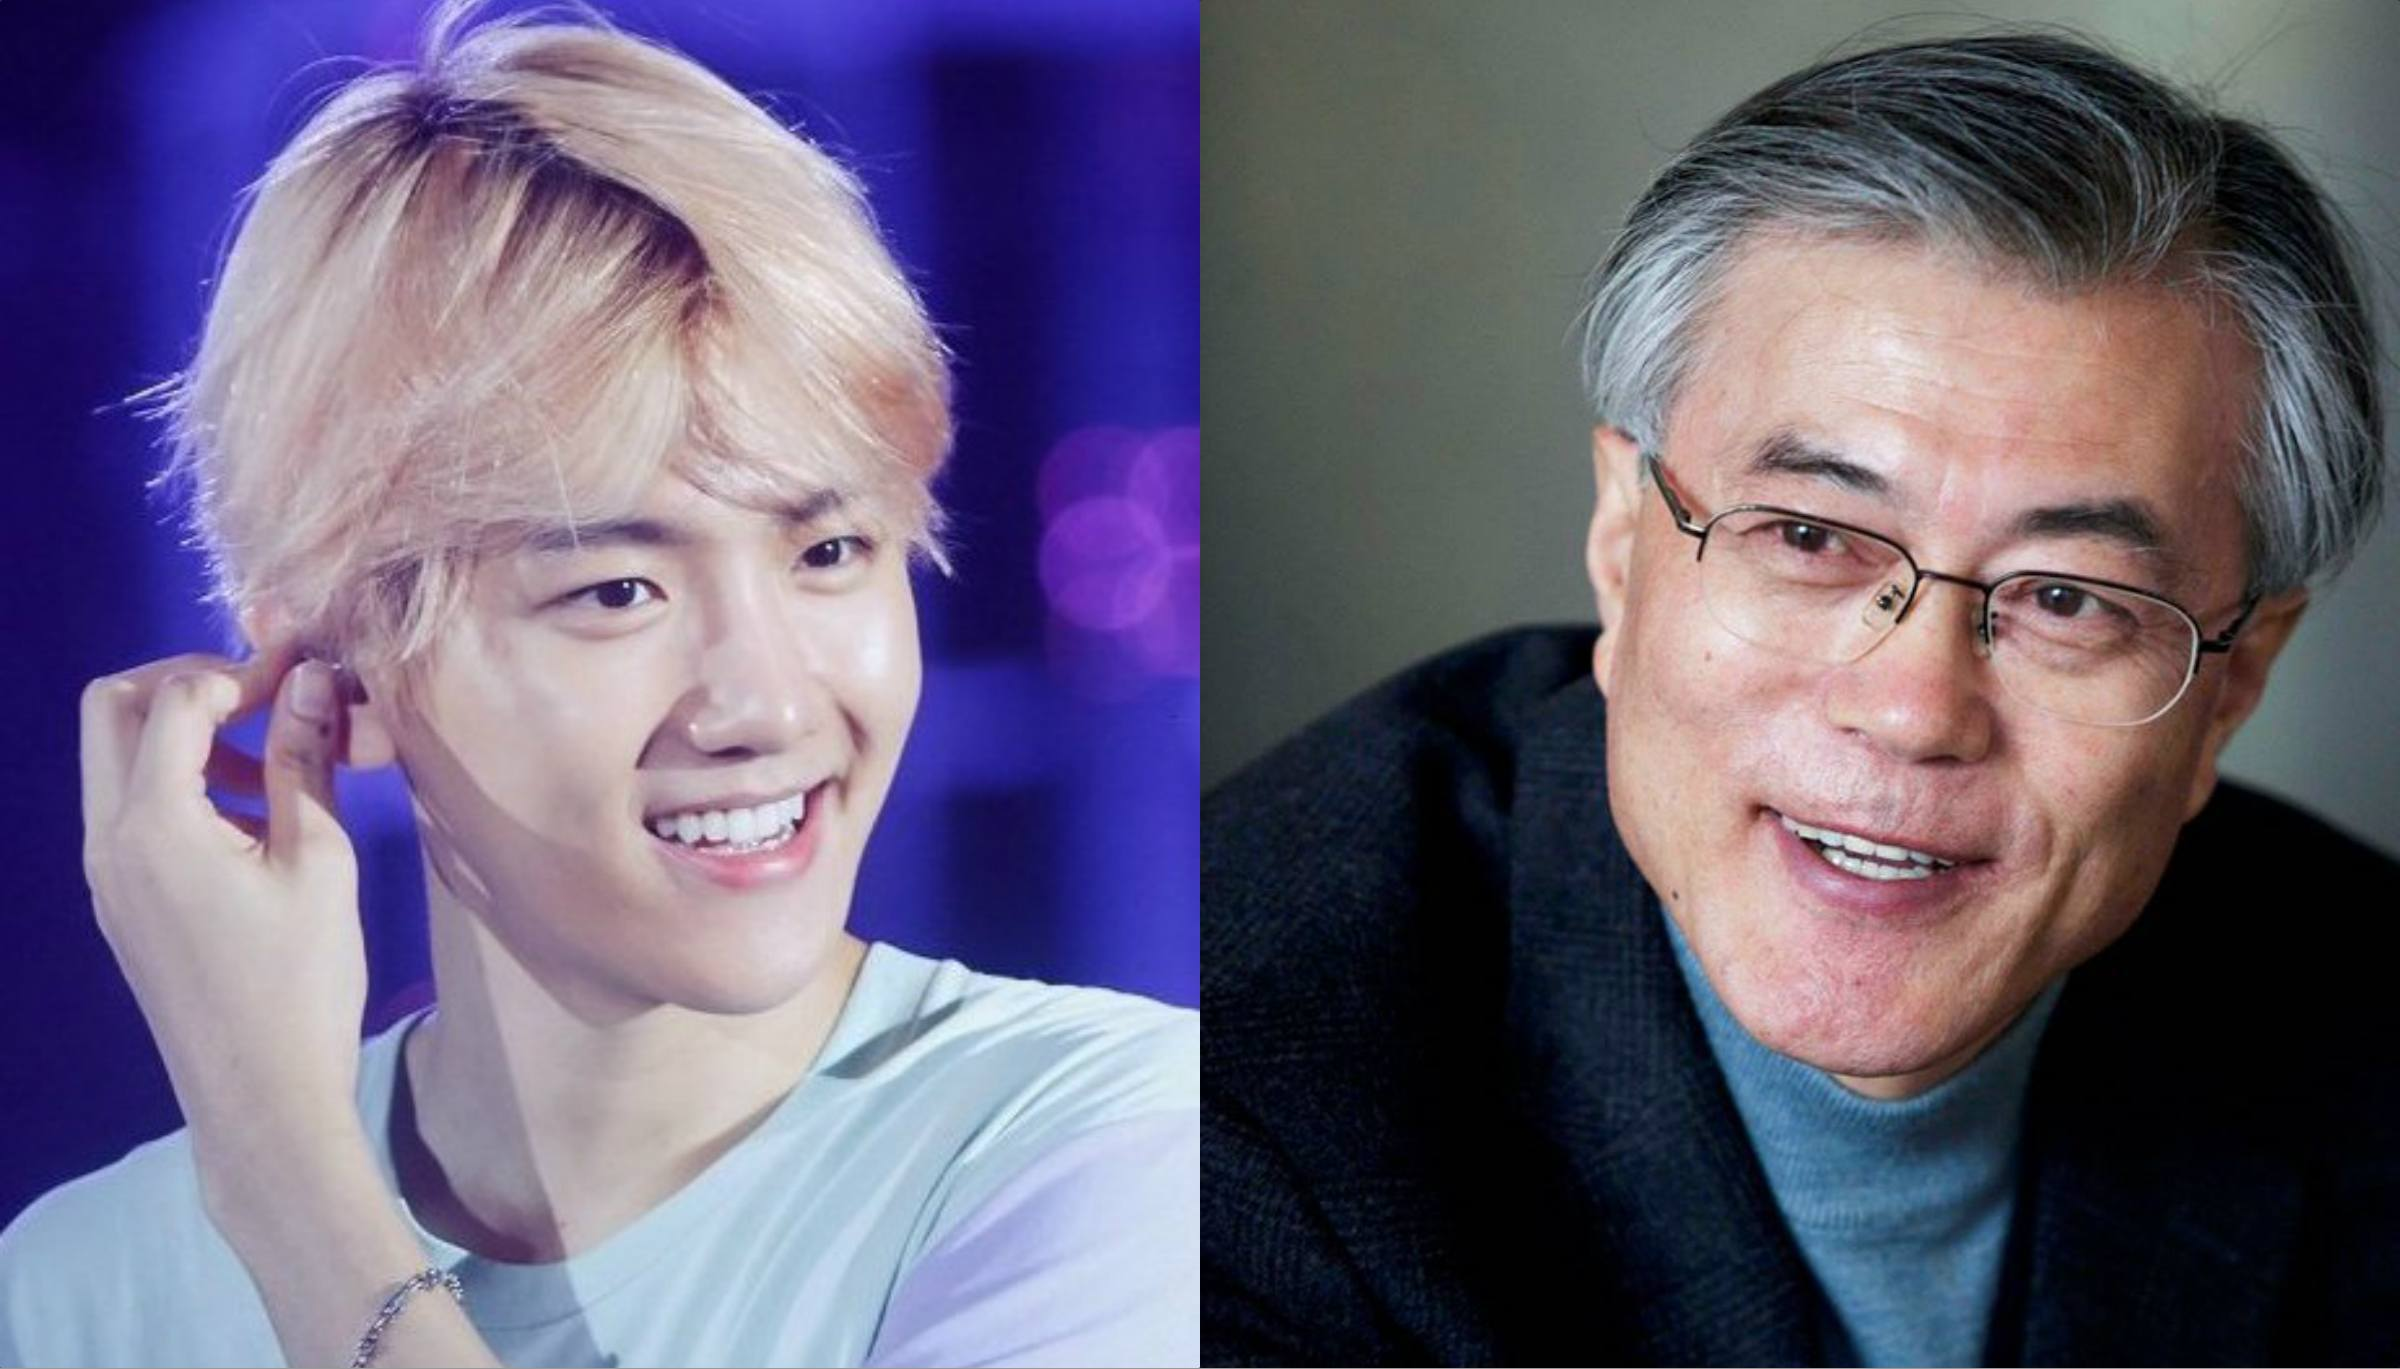 Korean Presidential Candidate Shows His Love For This EXO Member After Visiting SM Artium